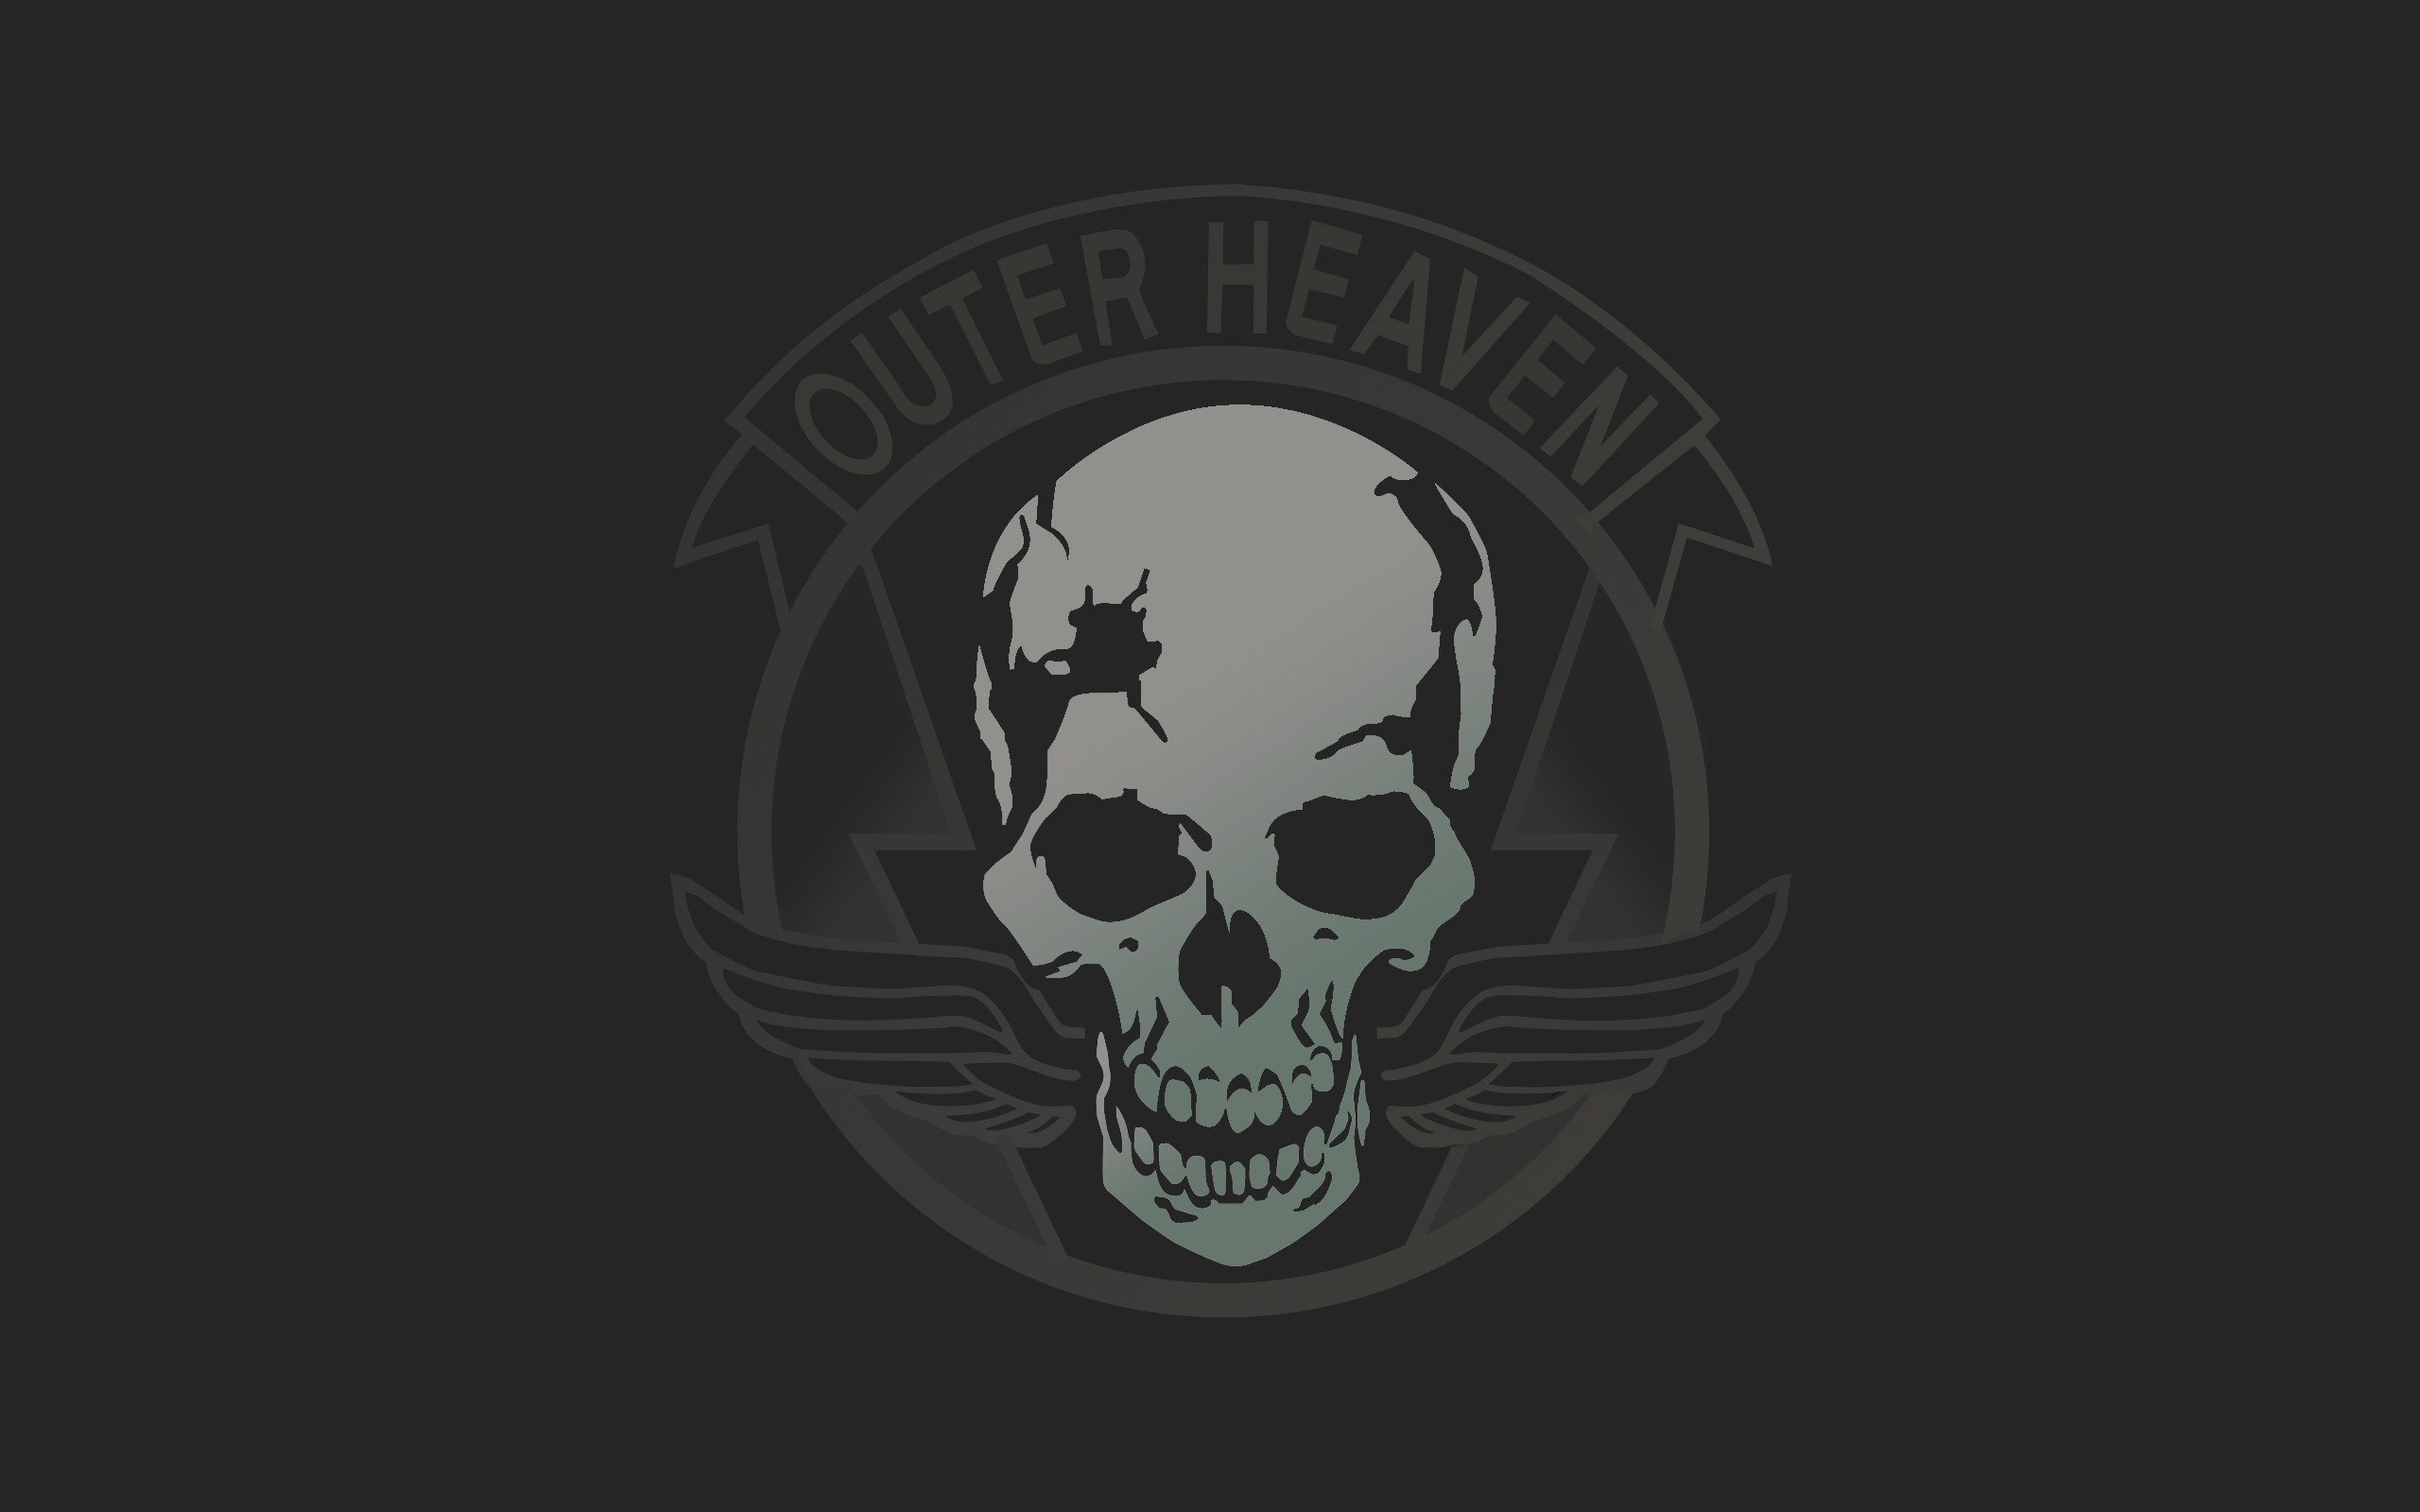 2560x1600 Outer heaven wallpaper I made [] ...